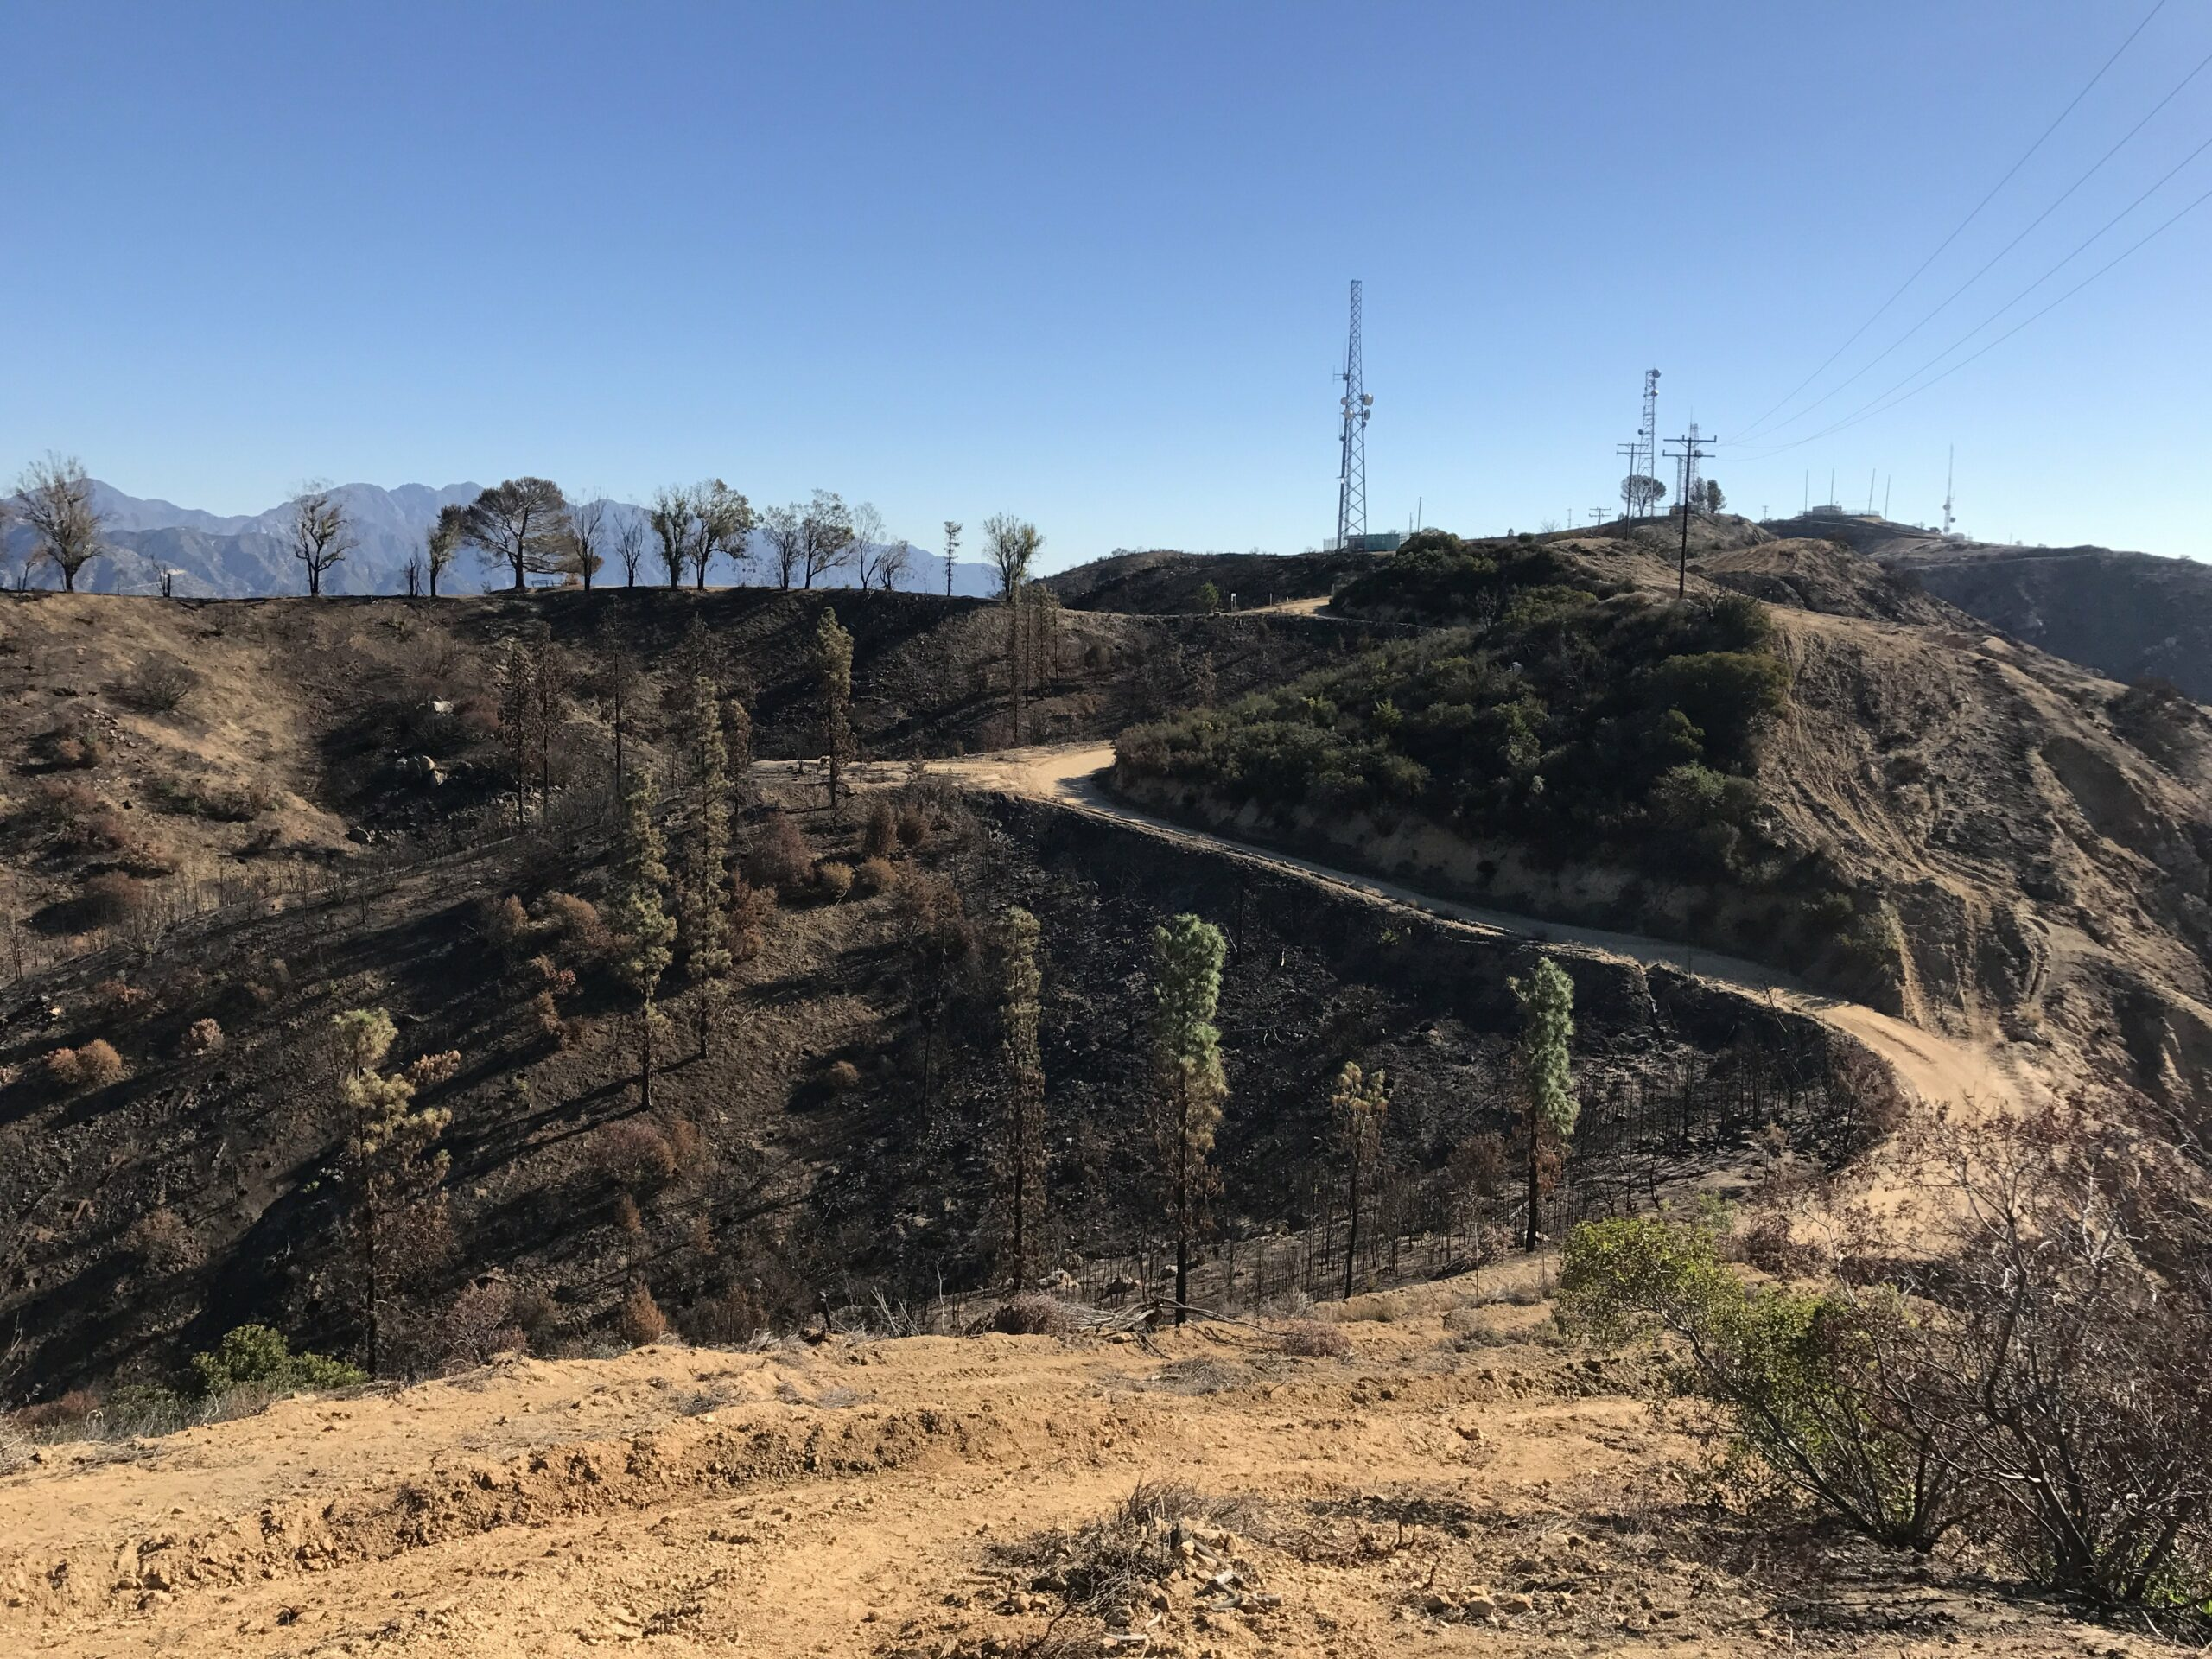 Wildwood canyon fire damage